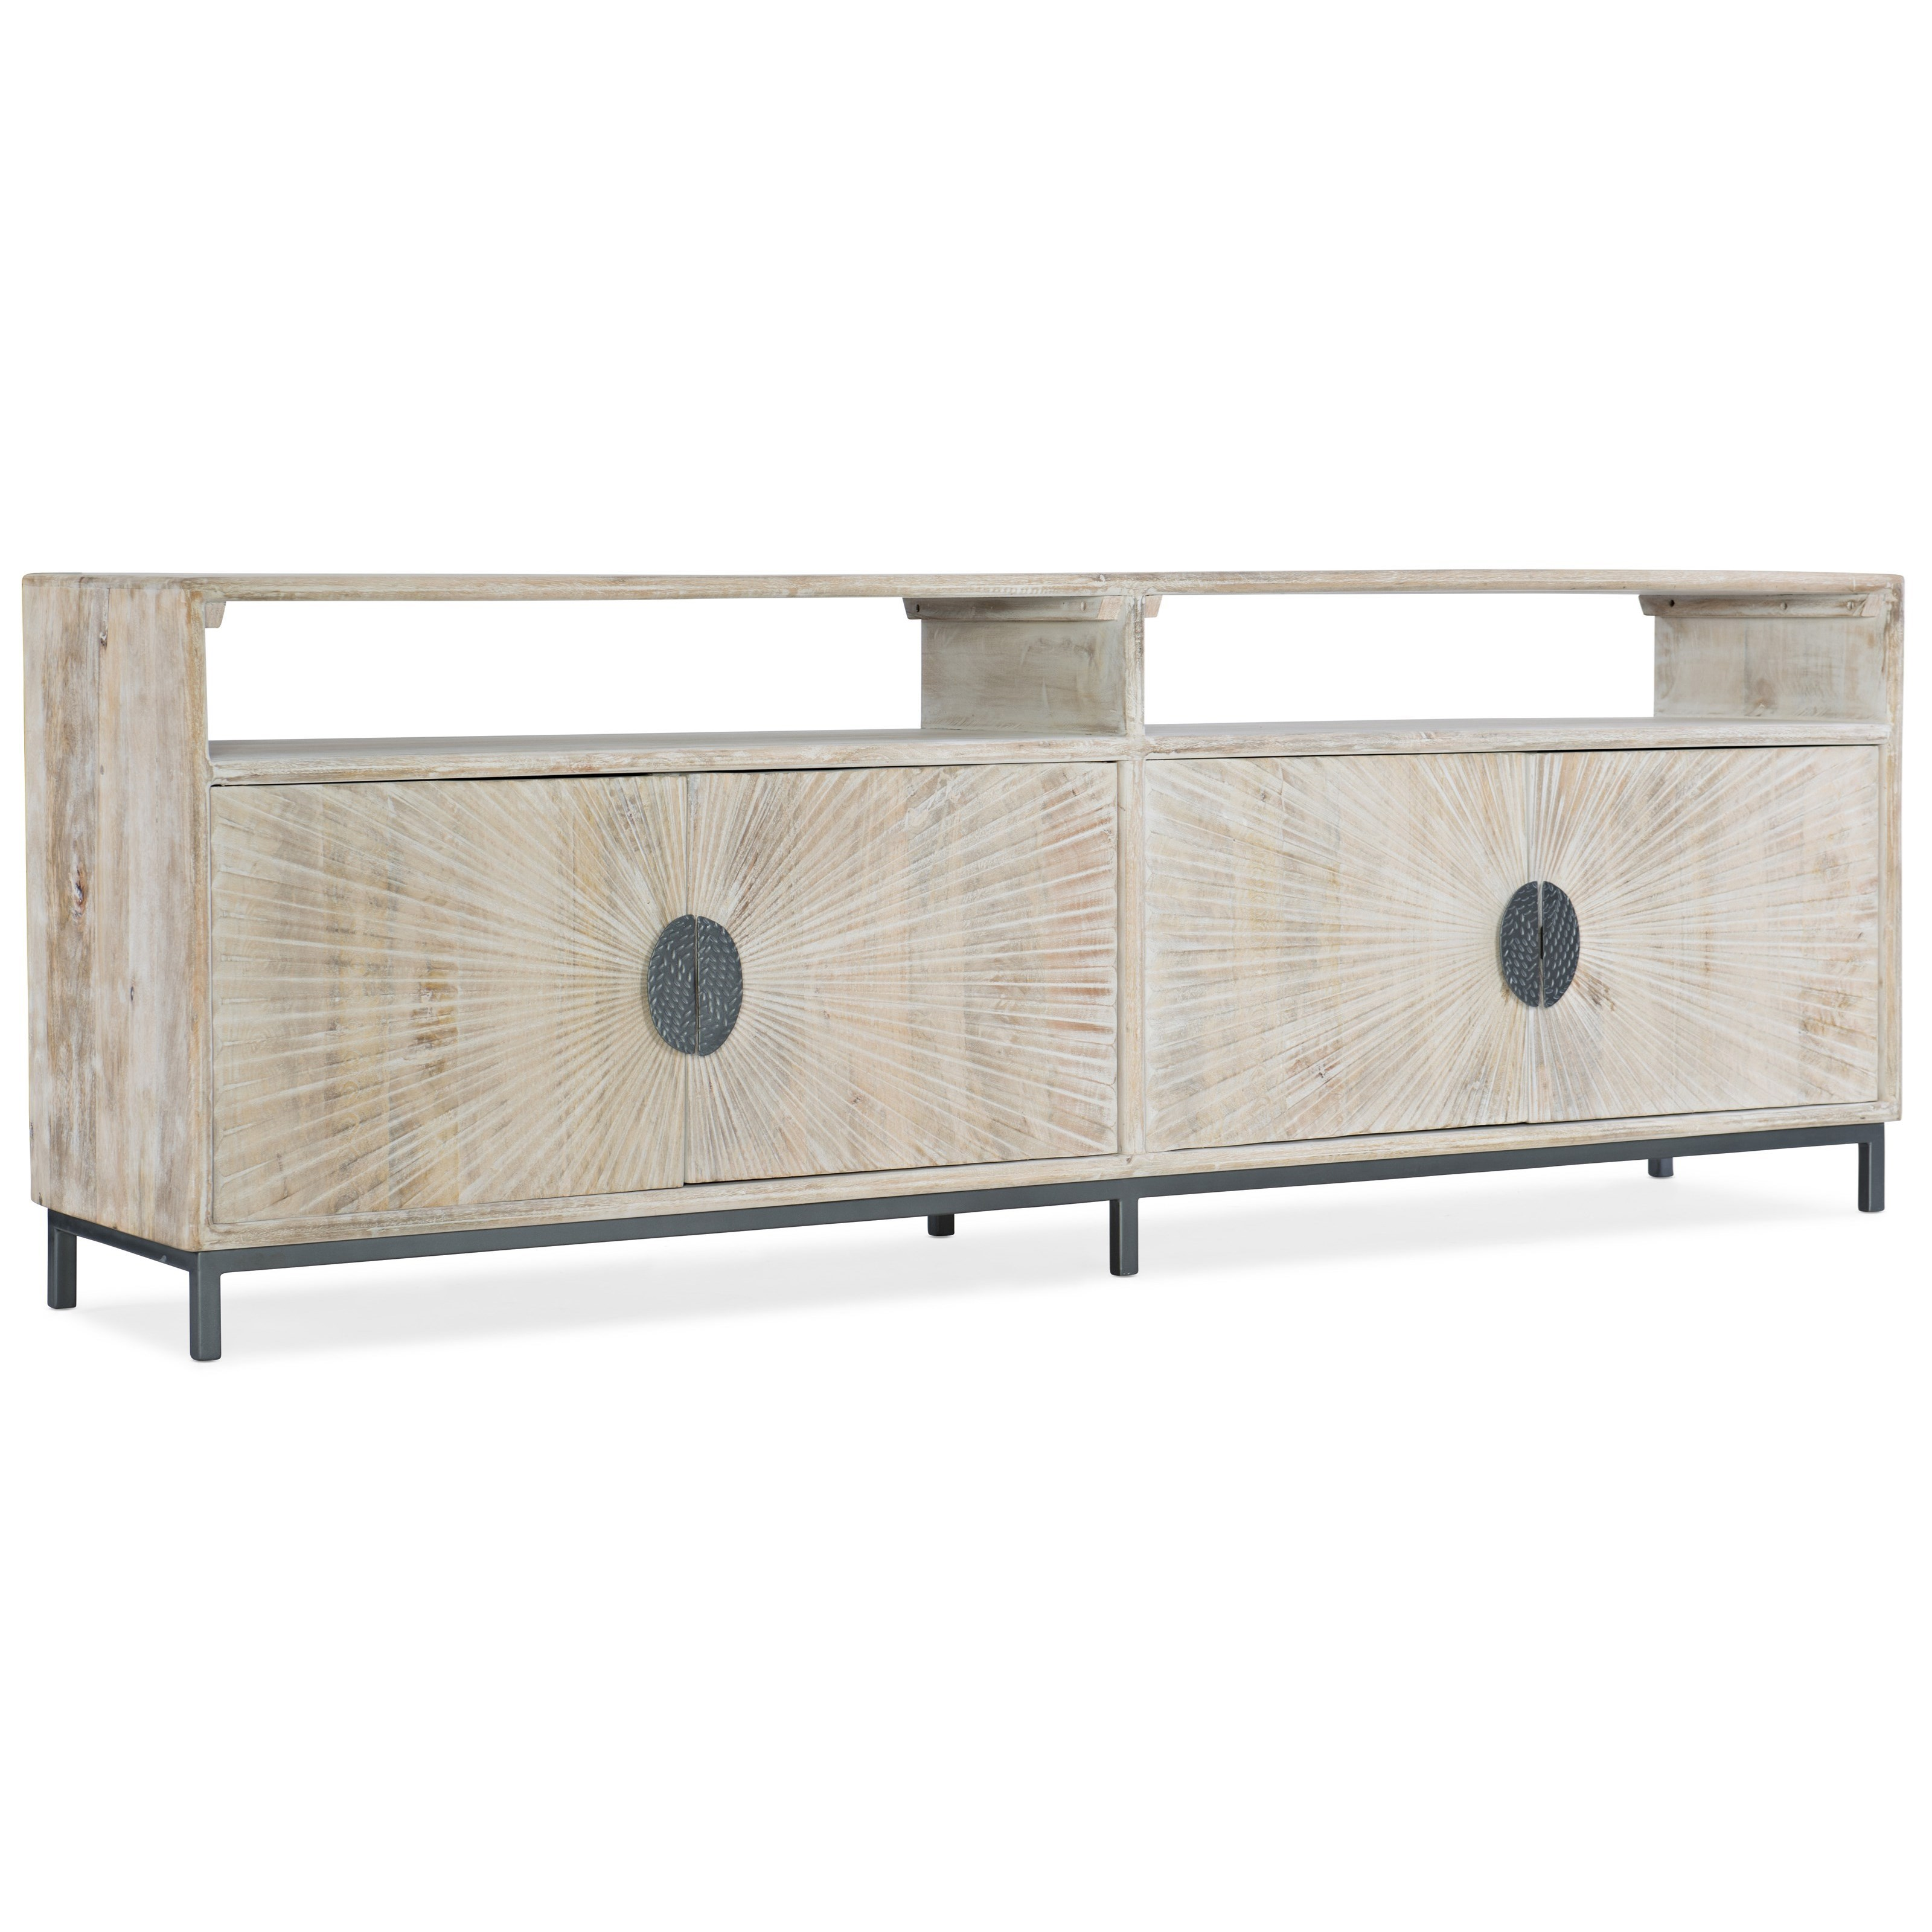 5560-55 Entertainment Console by Hooker Furniture at Gill Brothers Furniture